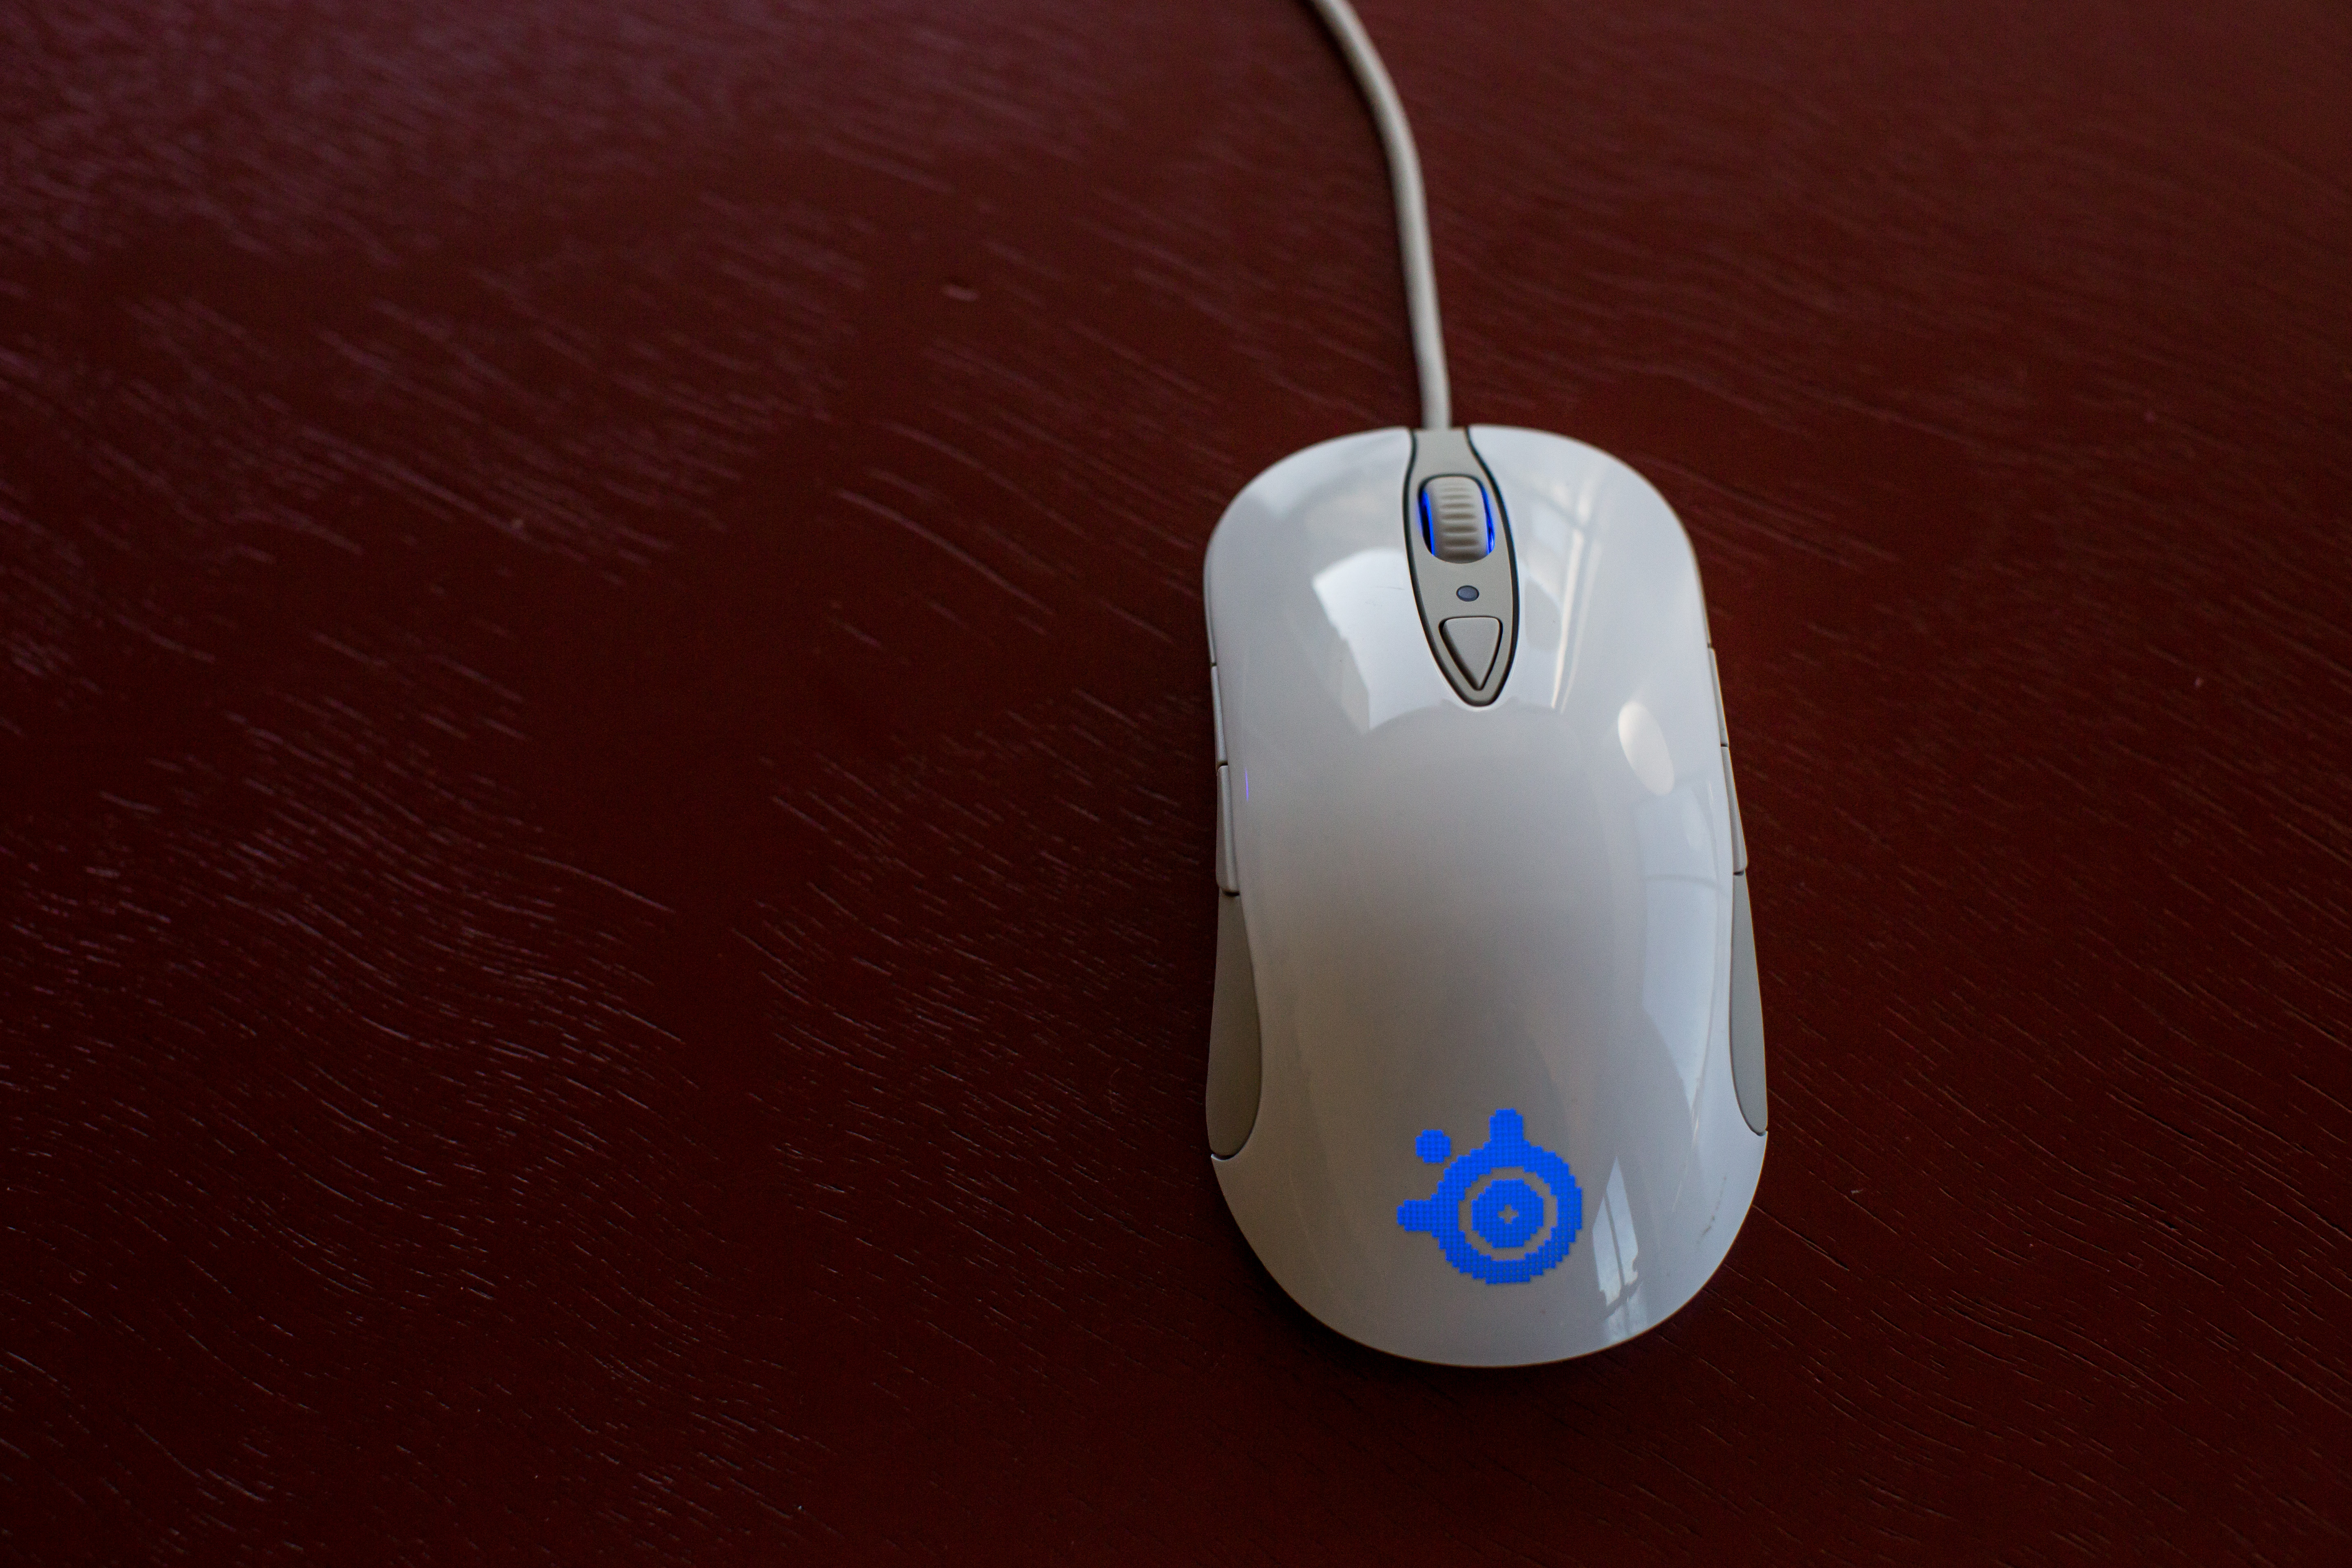 Best Gaming Mouse - Sensei Raw 2